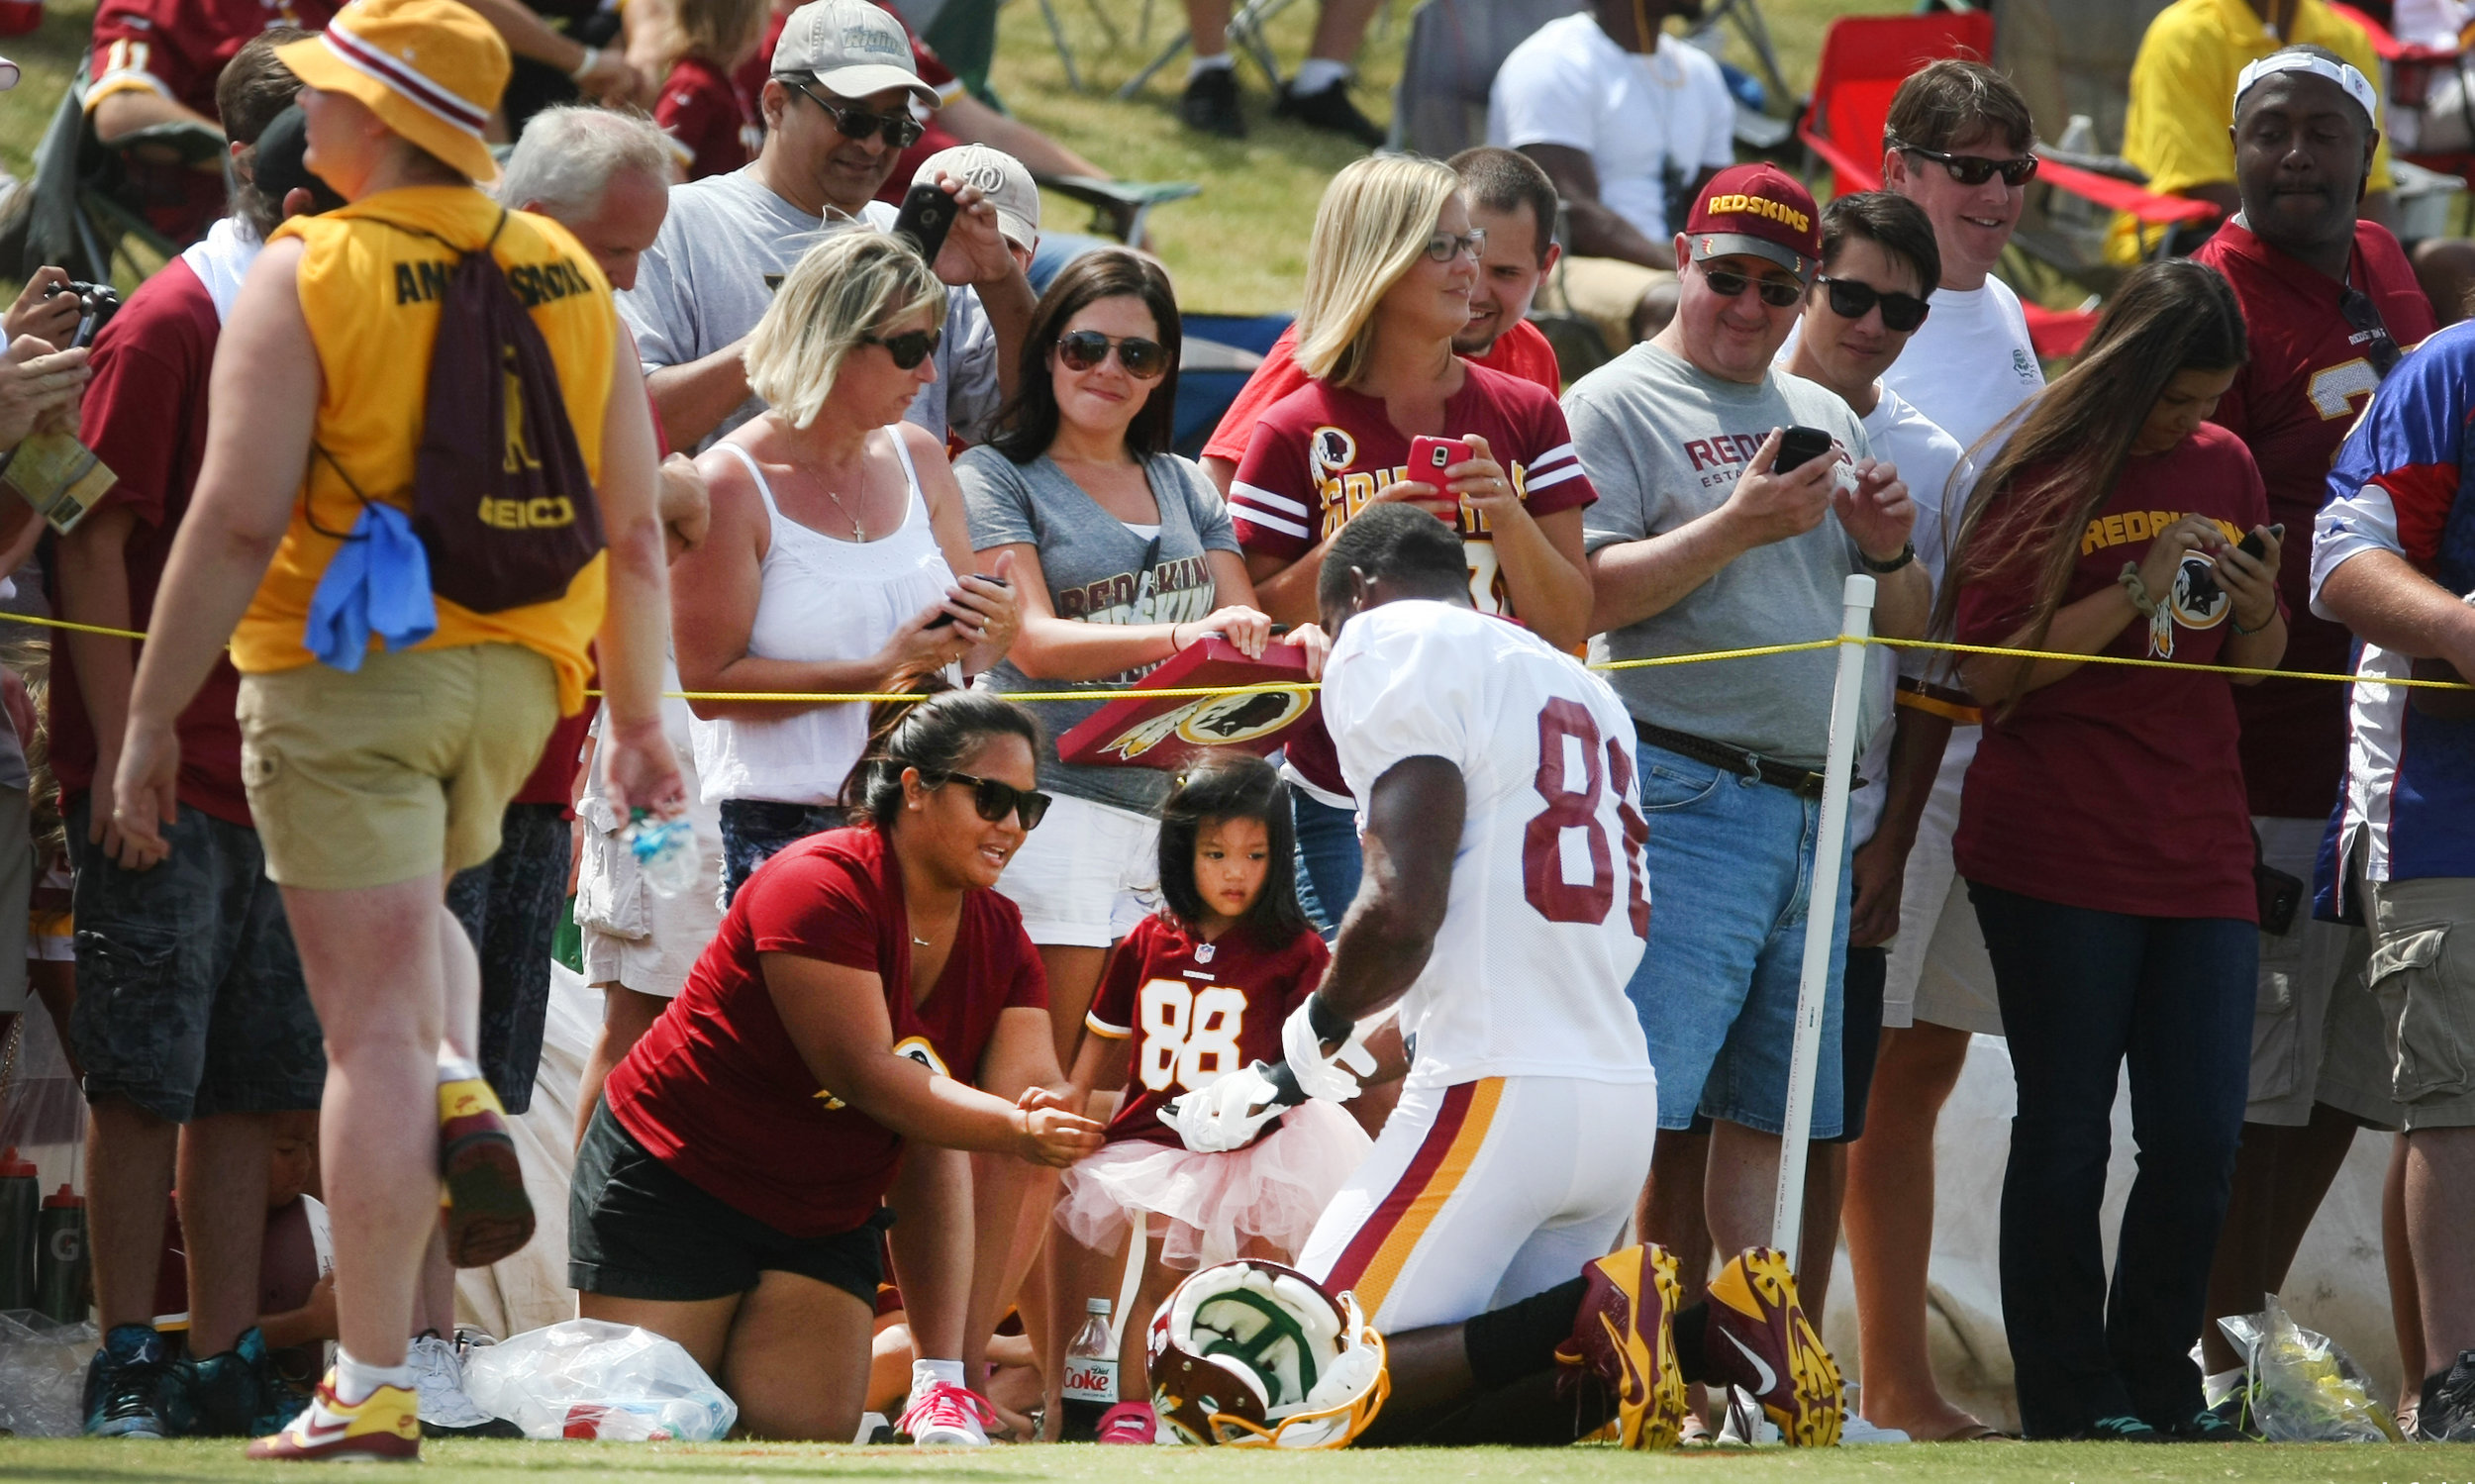 Washington Redskins wide receiver Pierre Garcon signs an autograph during the team's NFL football training camp in Richmond, Va., Sunday, Aug. 2, 2015.